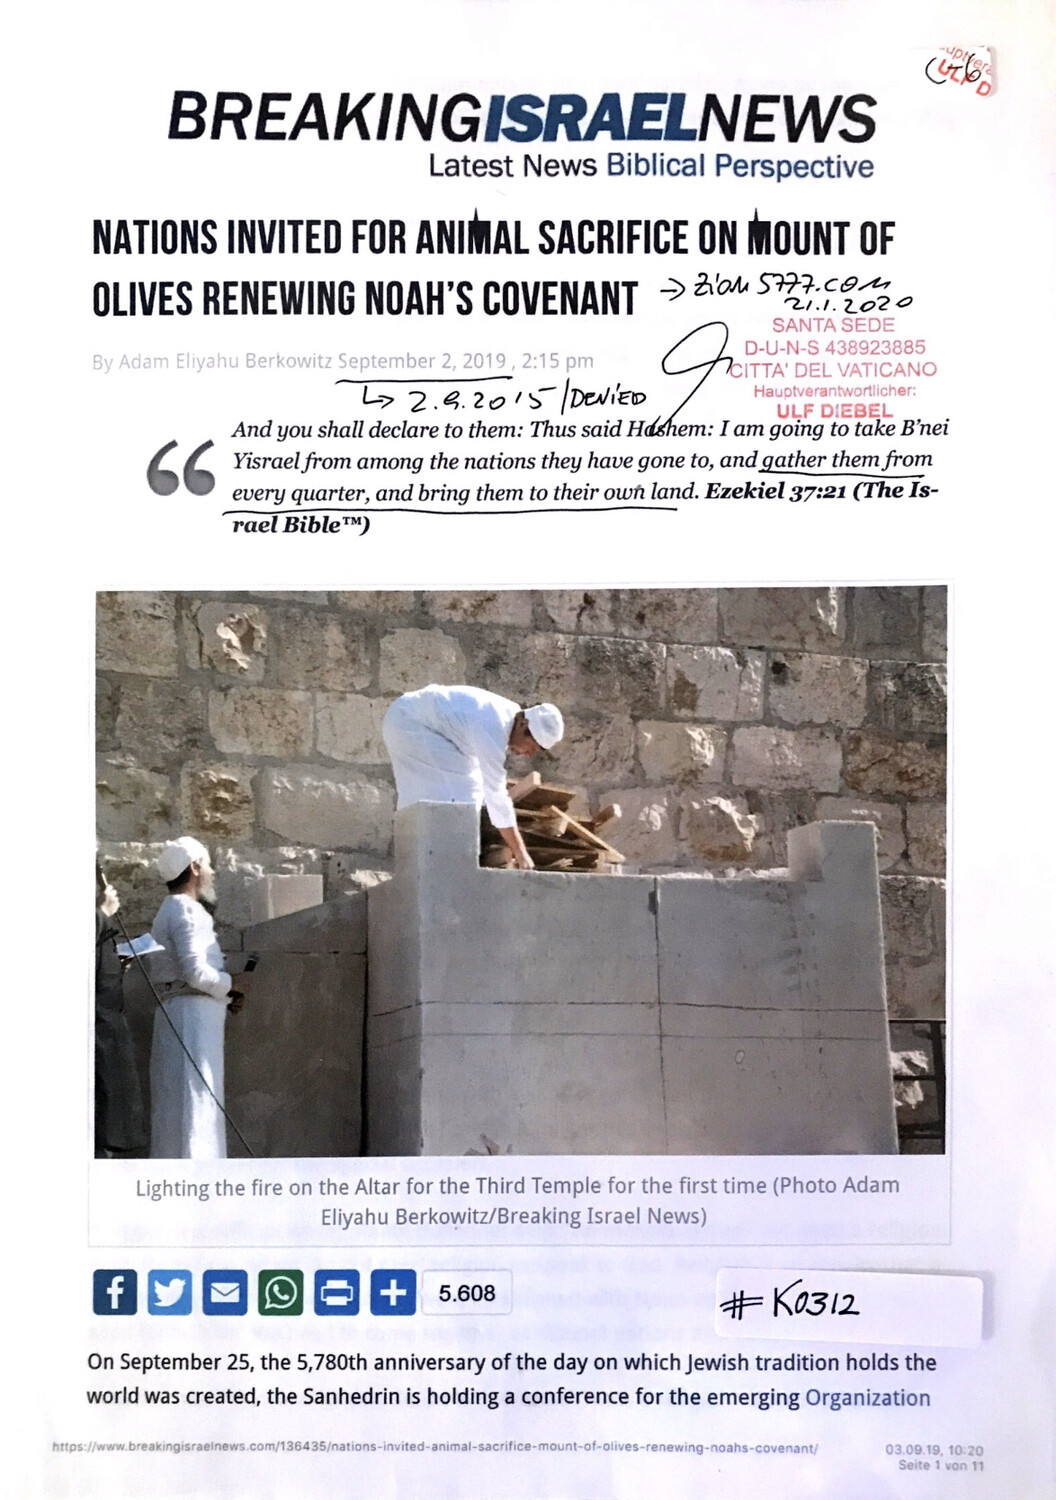 #K0312 l Breaking Israel News - Nations invited for animal sacrifice on Mount of Olives renewing Noah's Covenant